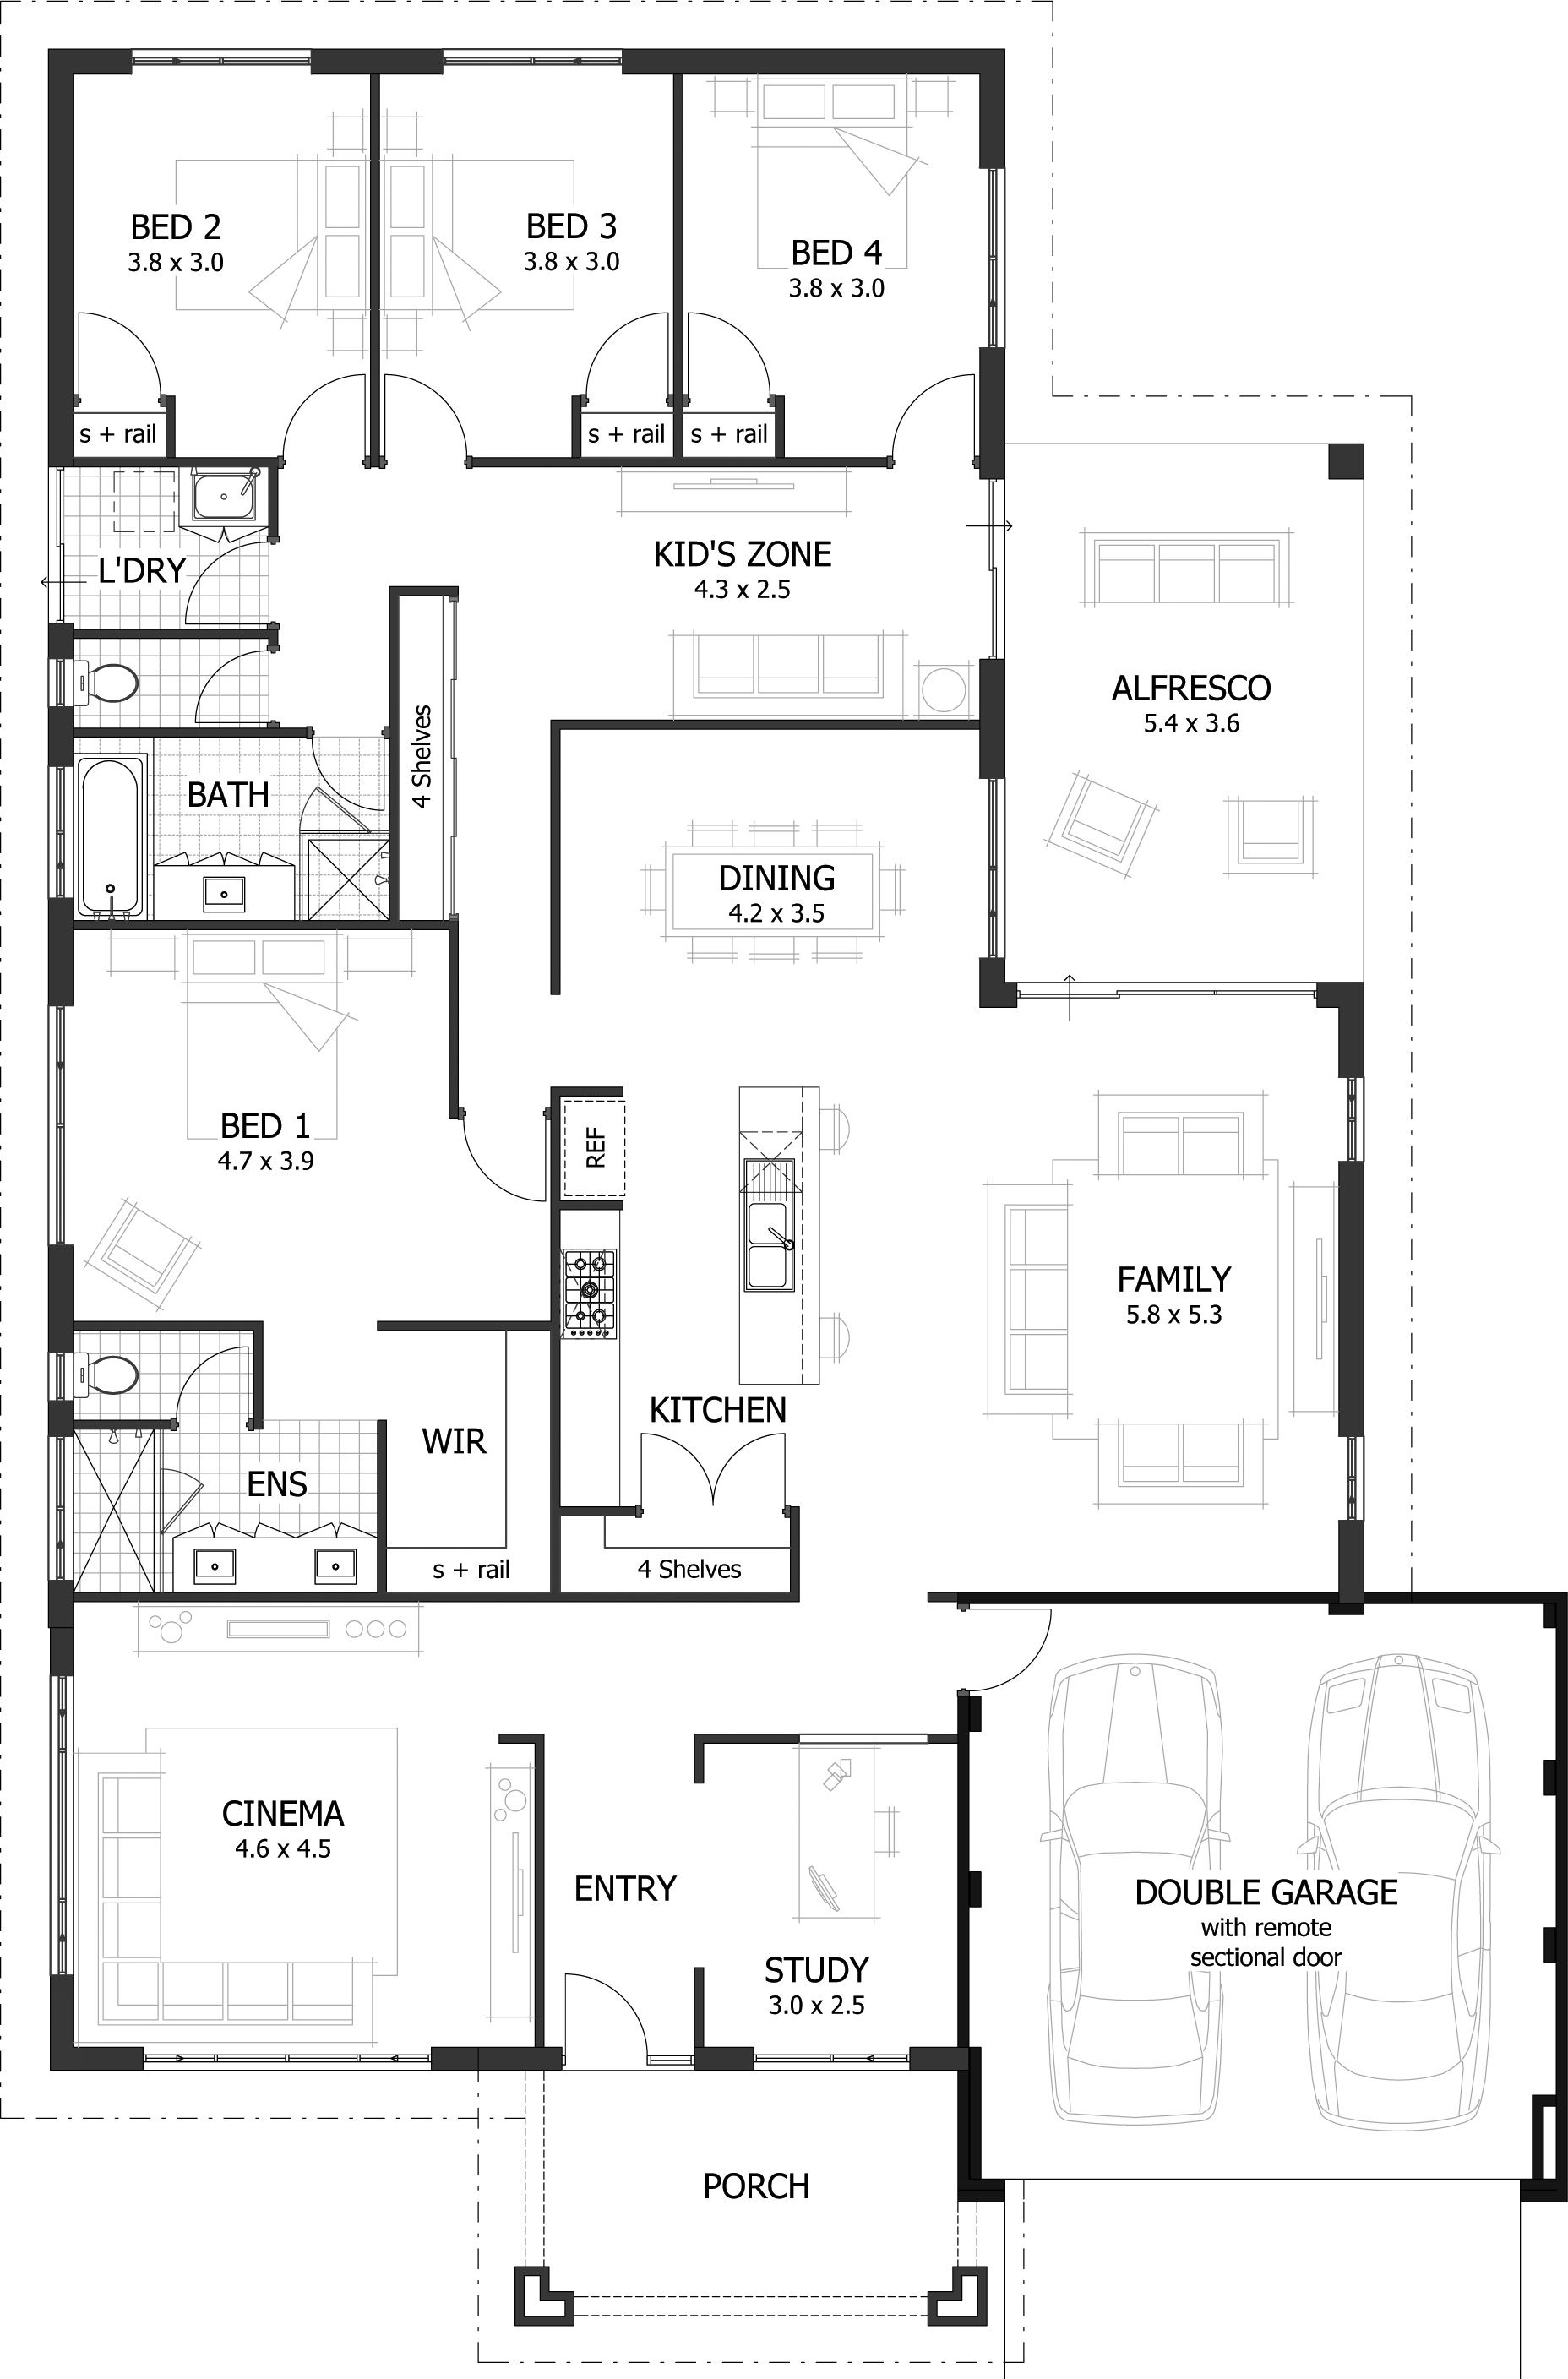 4 Bedroom House Plans Home Designs With Images 4 Bedroom